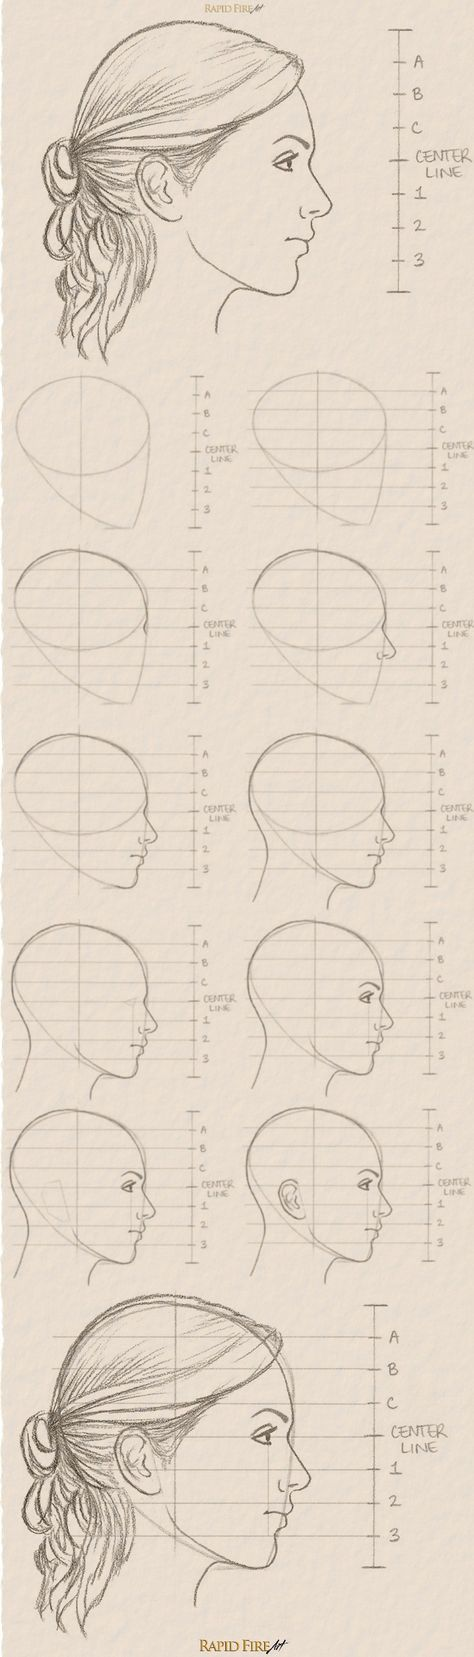 How to draw a female face (side view)